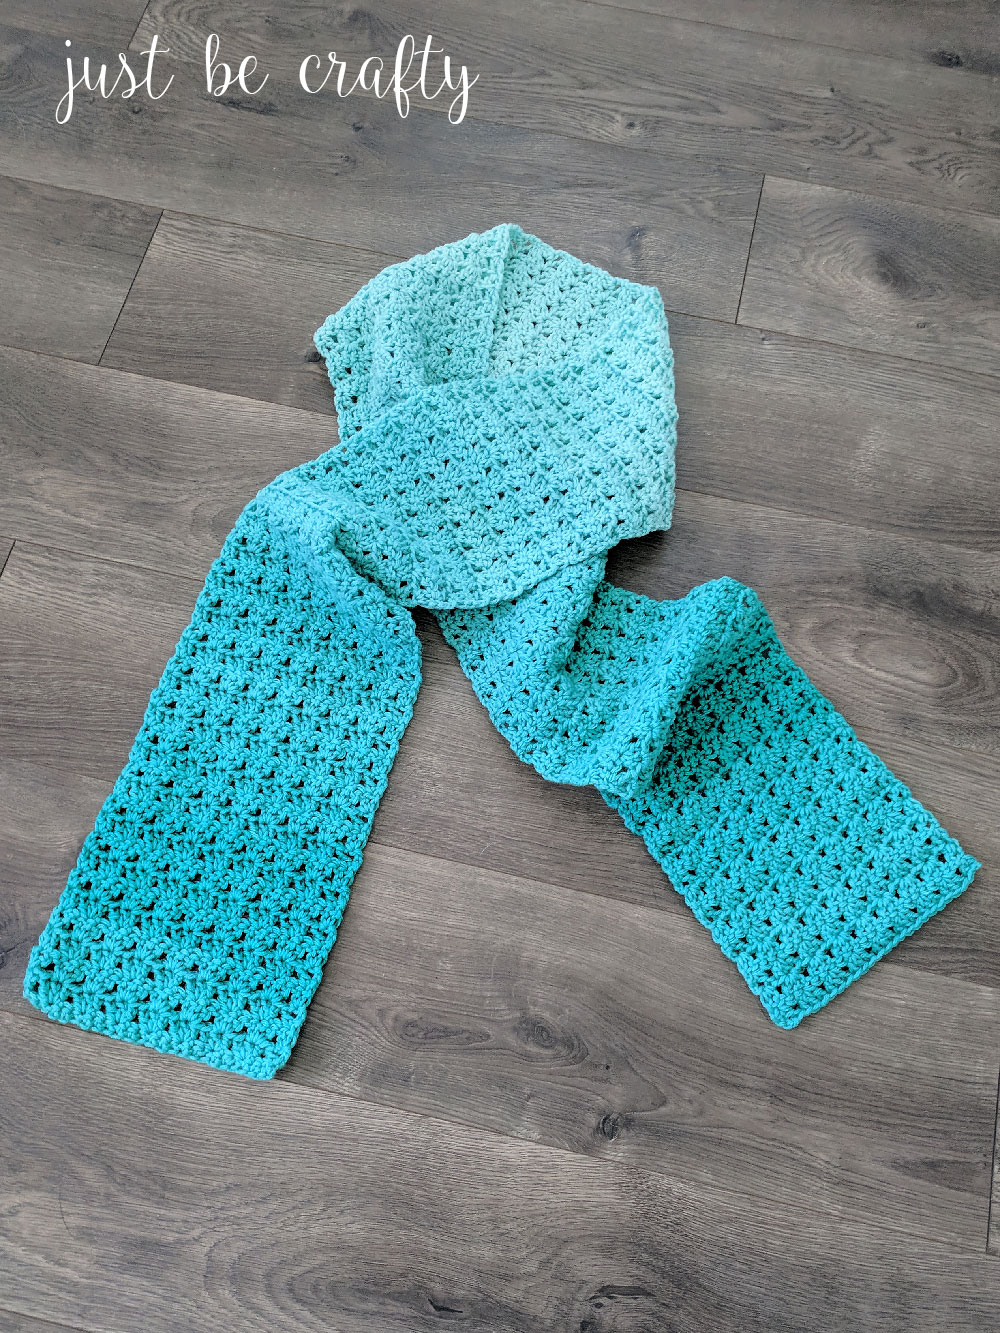 Green Meadows Crochet Scarf Pattern | Free Crochet Pattern by Just Be Crafty